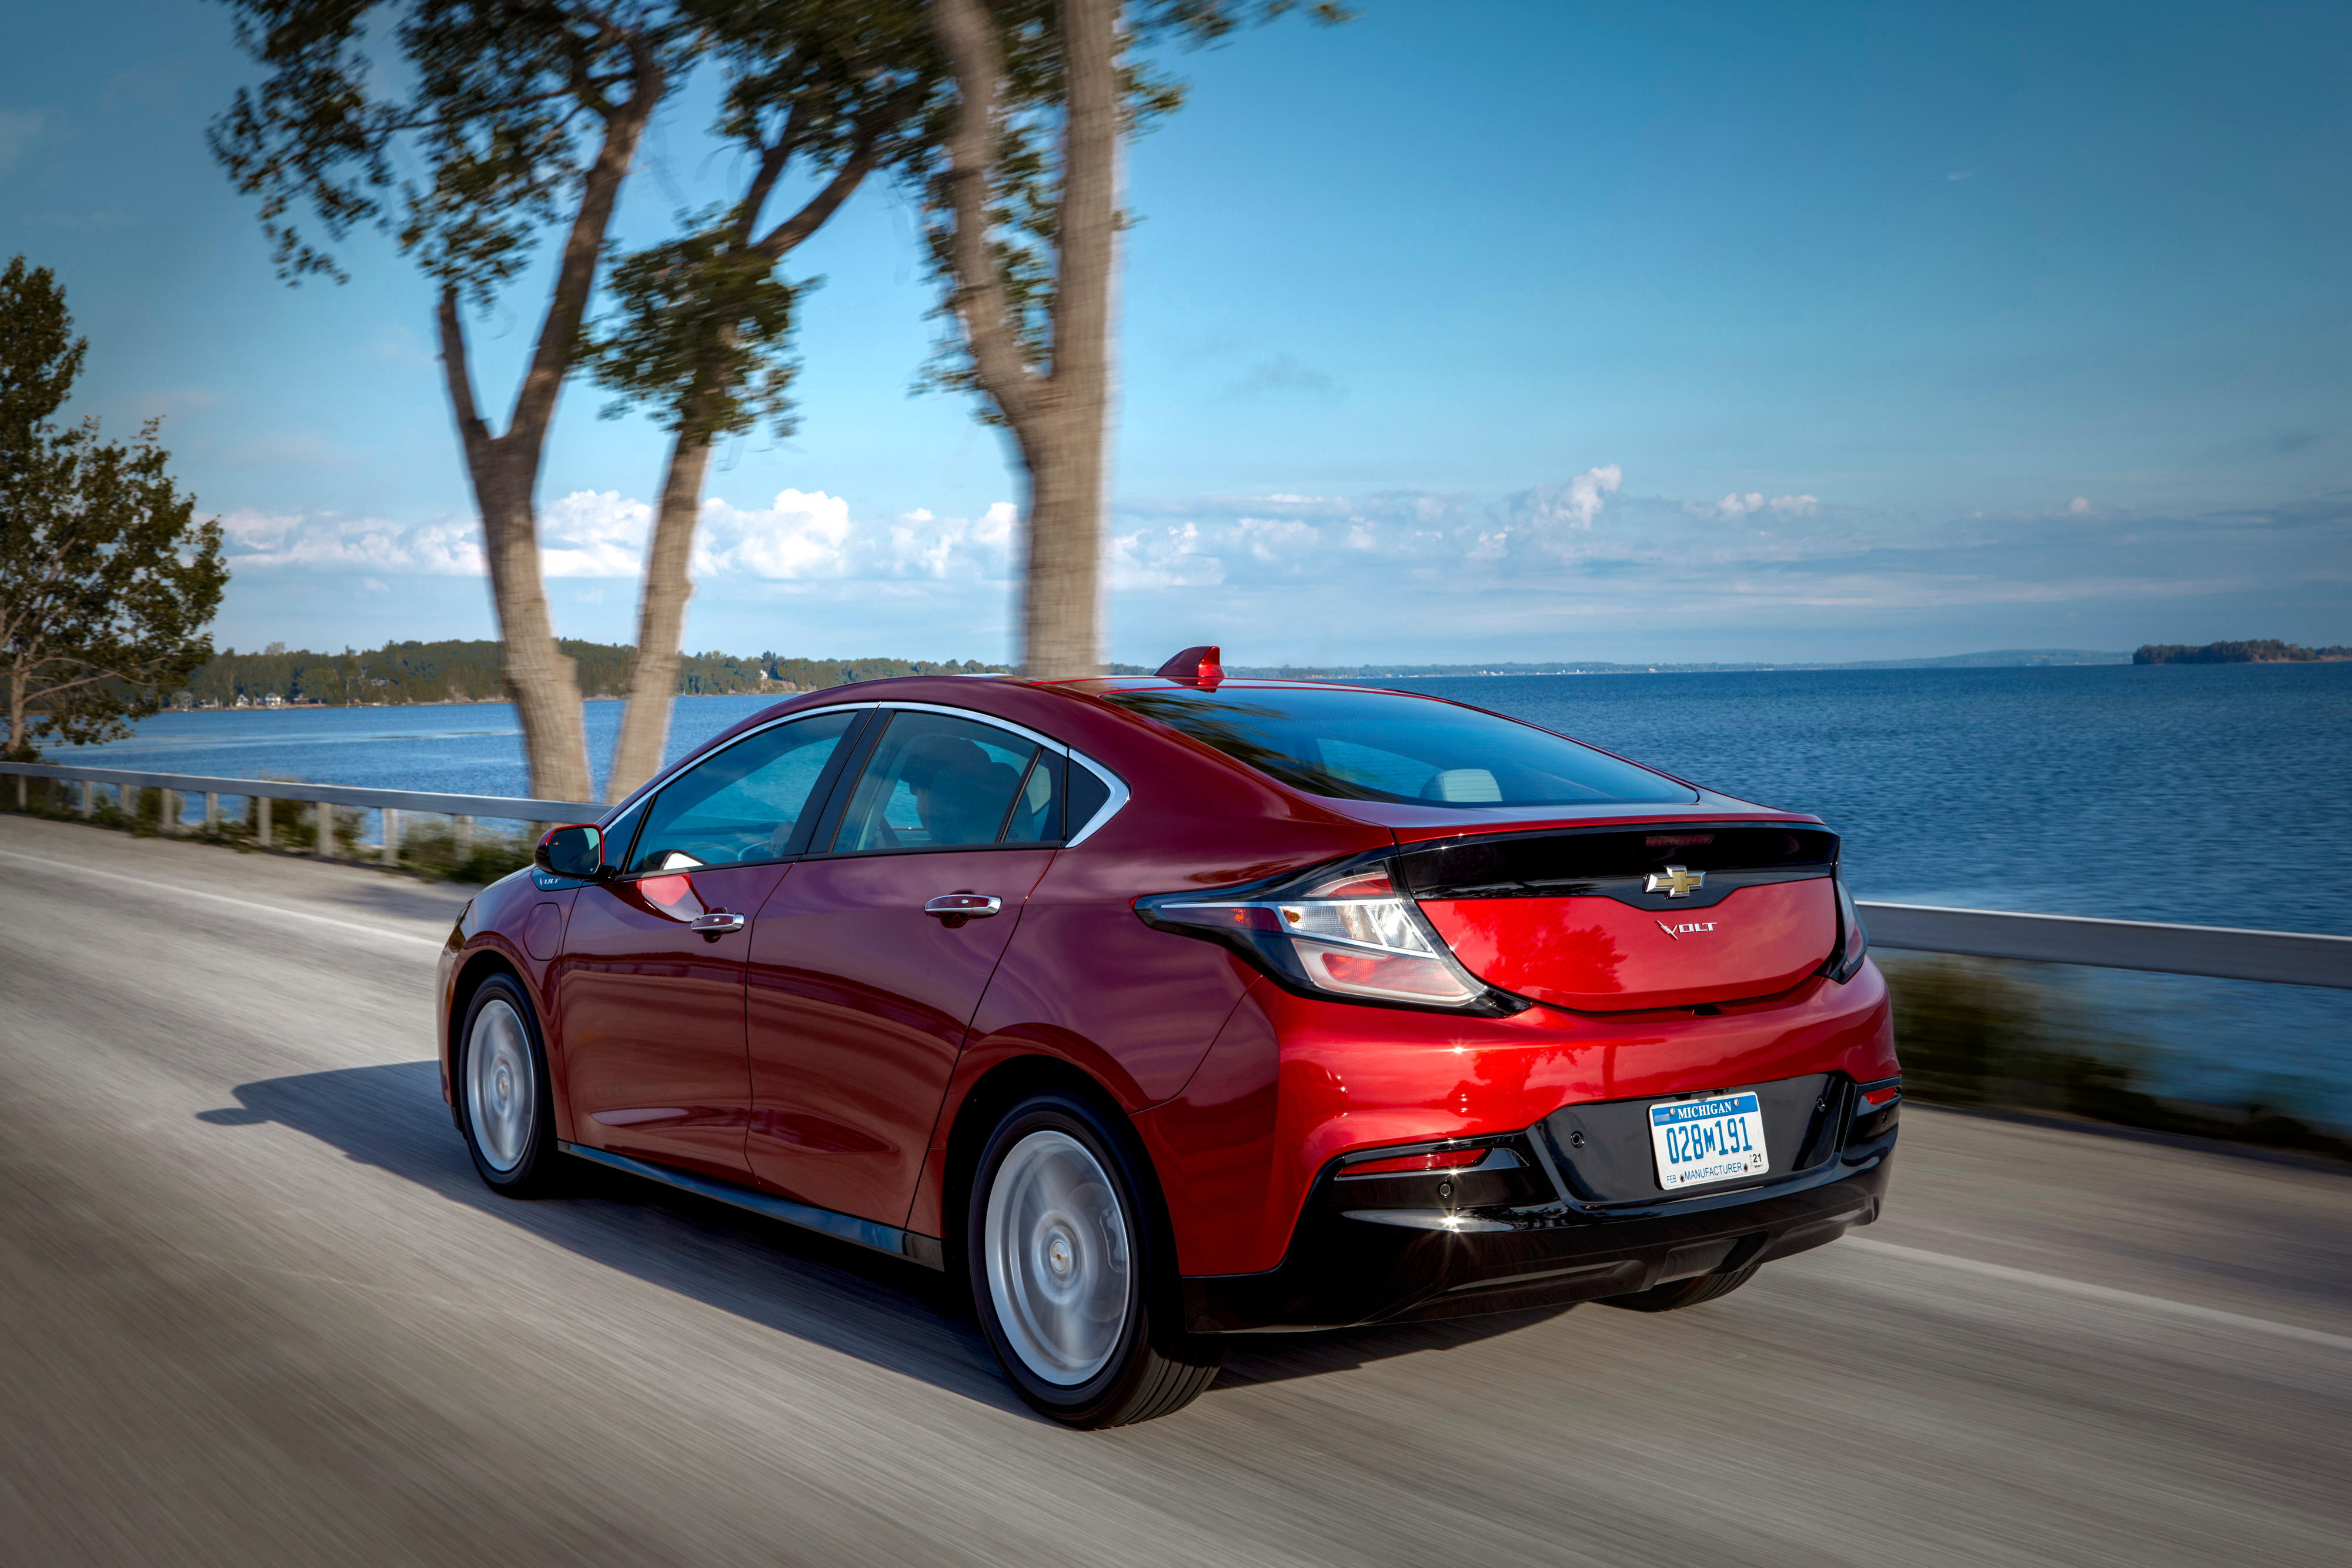 How Much Does a Chevy Volt Battery Replacement Cost?